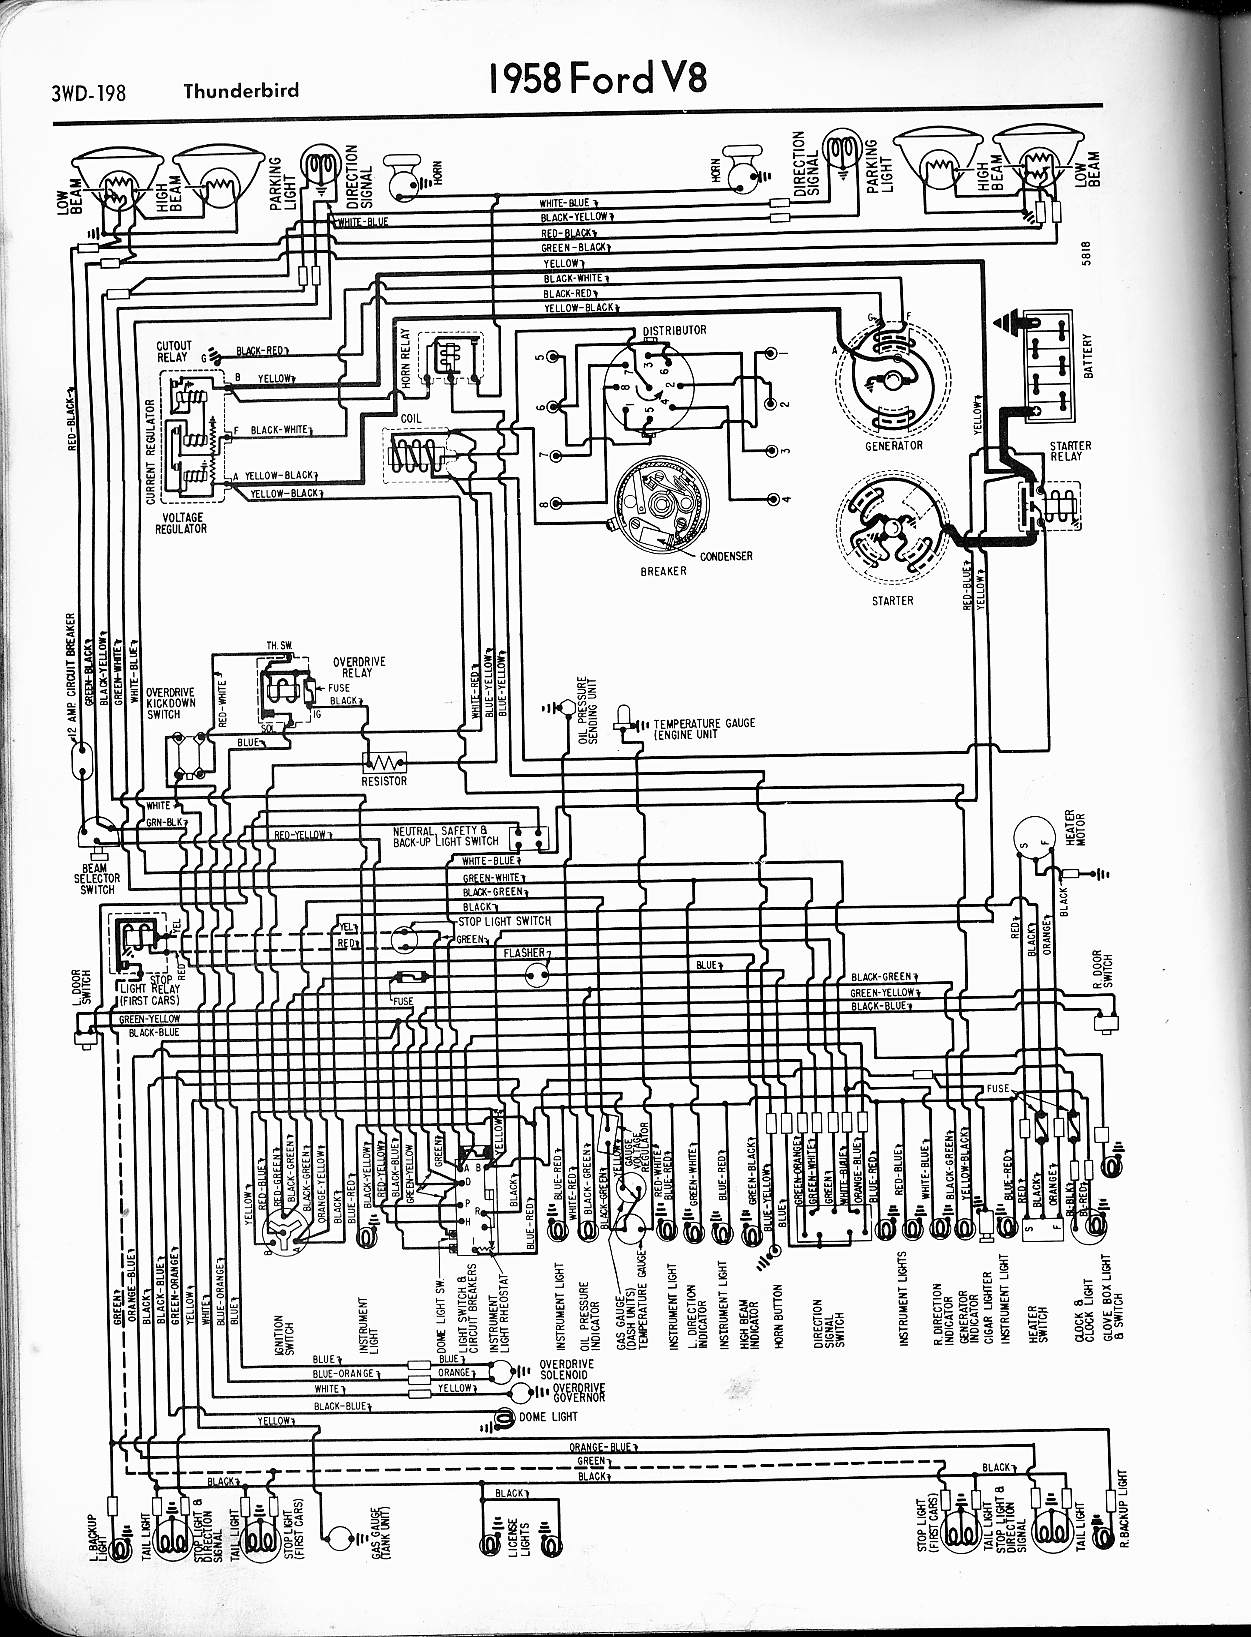 1957 ford wiring harness wiring schematics diagram rh mychampagnedaze com  82 Corvette Wiring Diagram 77 Corvette Wiring Diagram